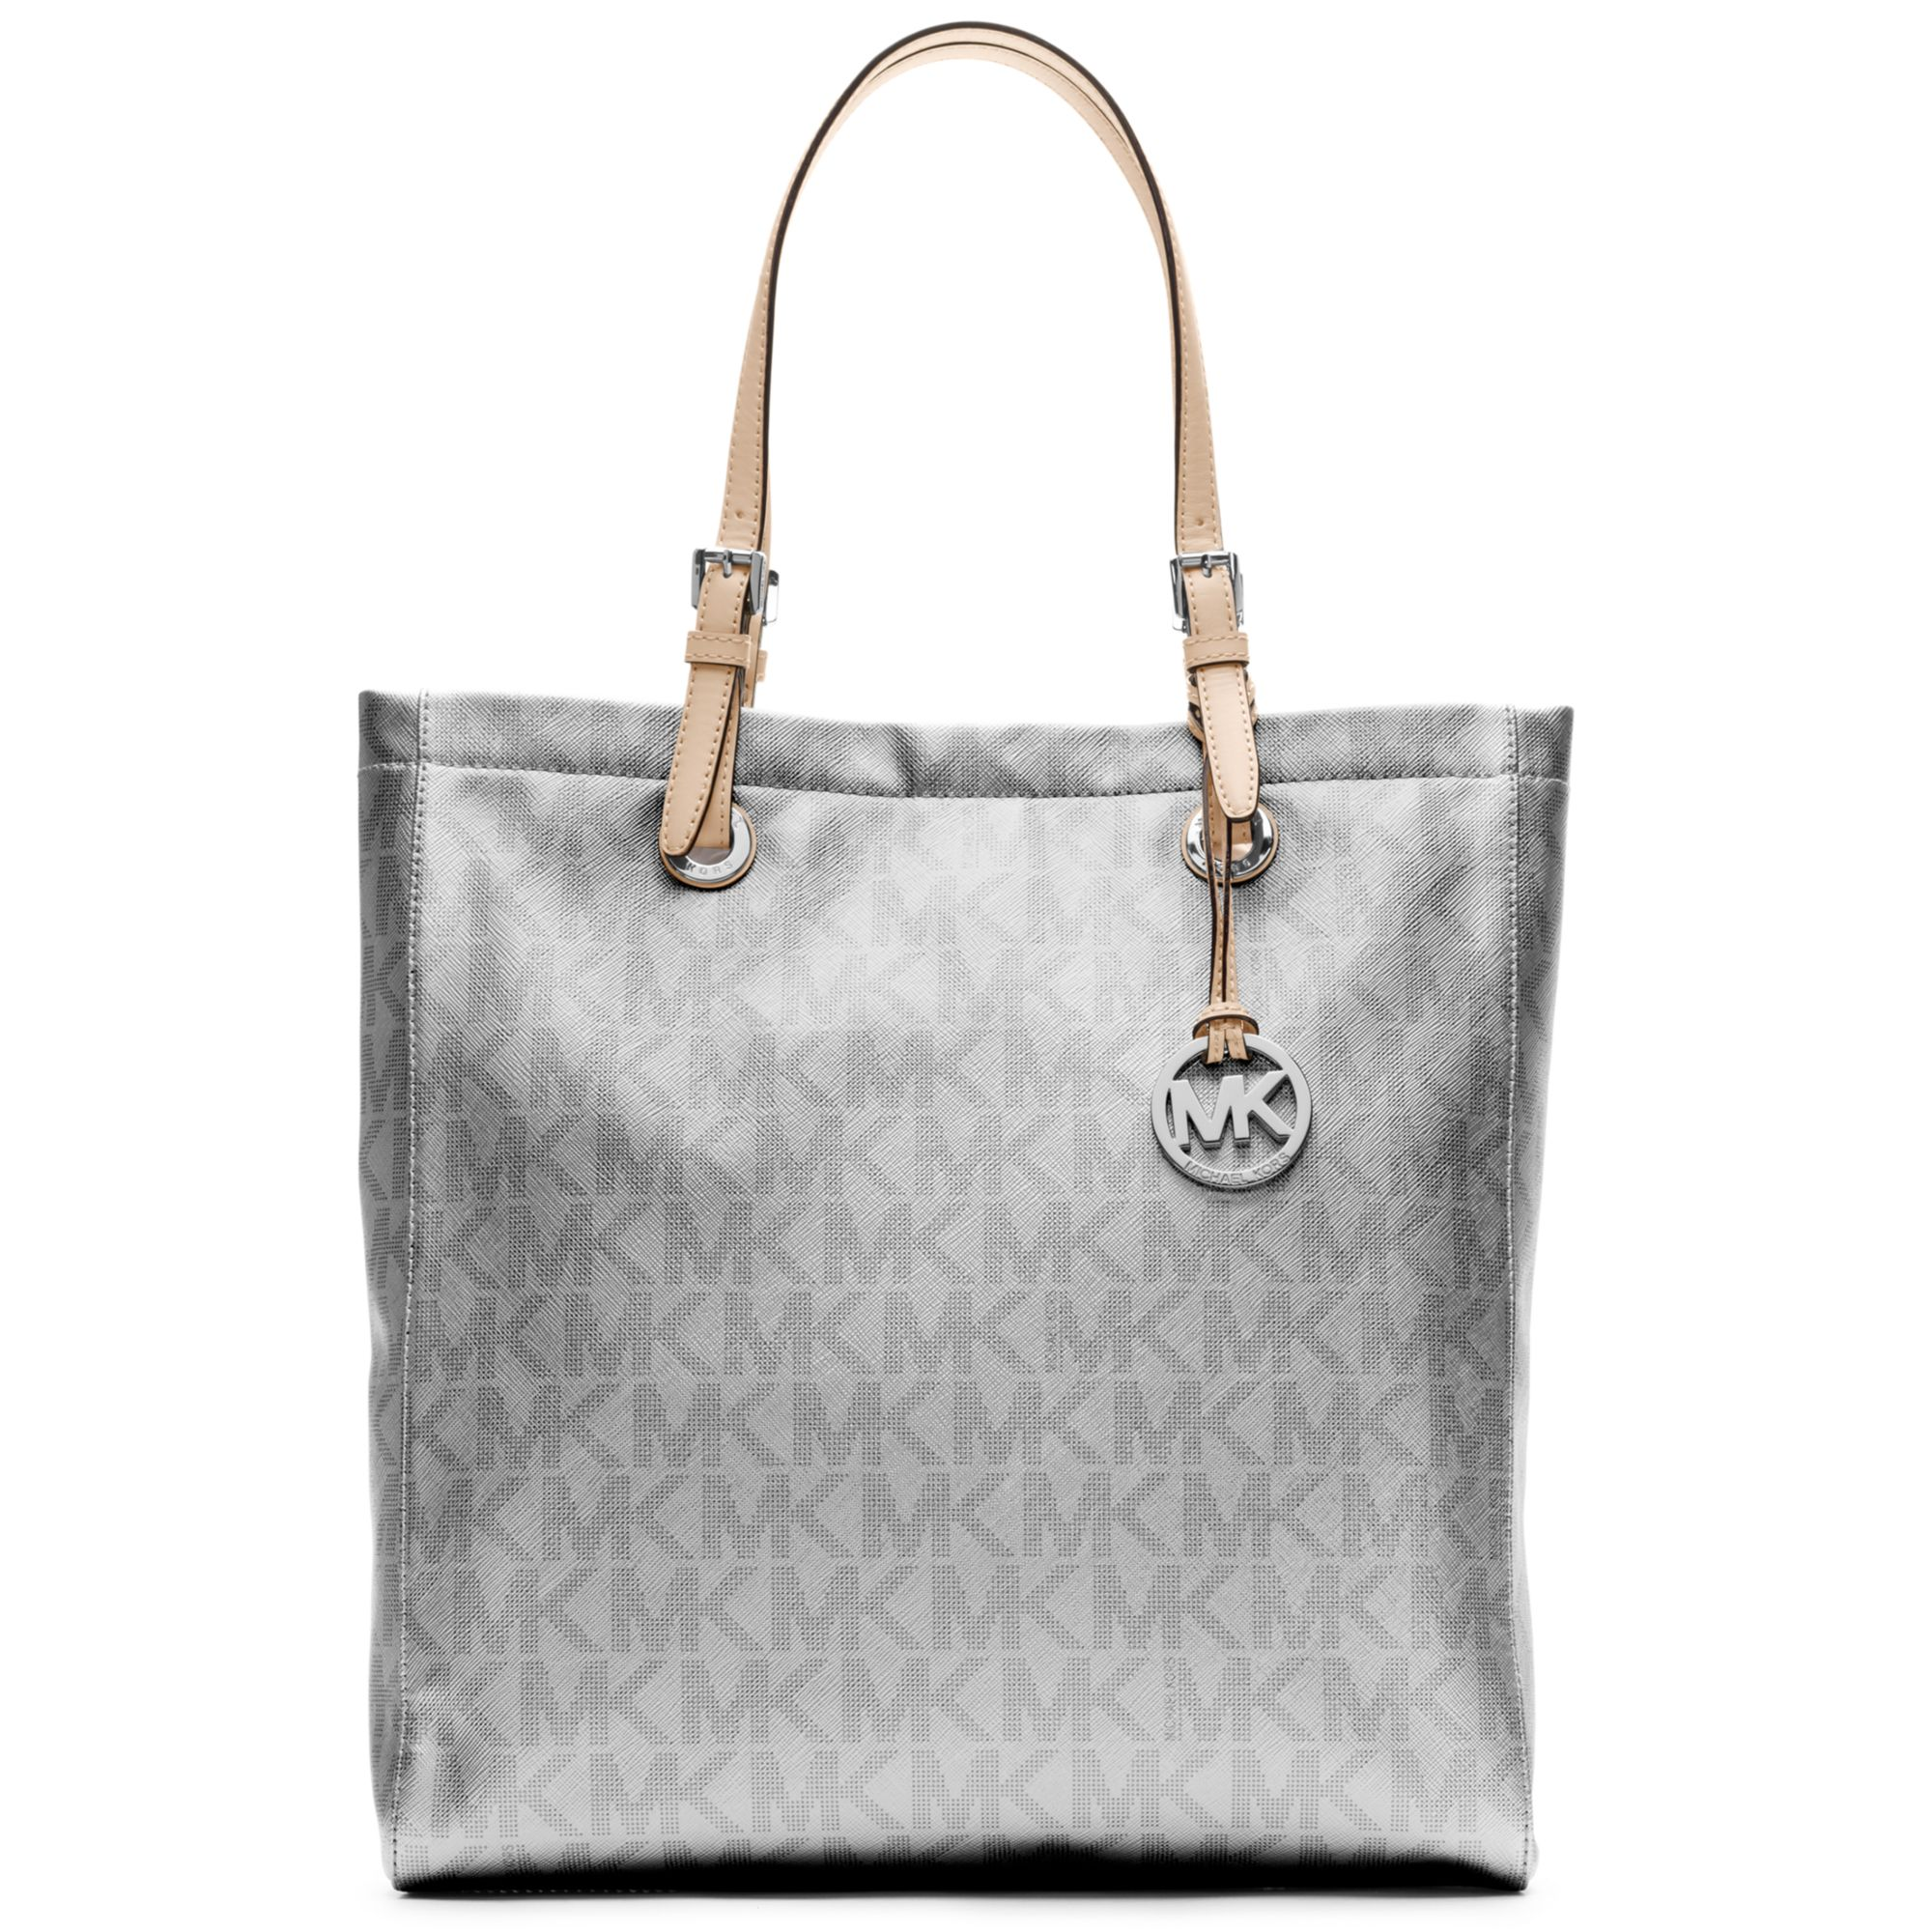 dade8145ca51 ... denmark ireland michael kors signature metallic north south tote in  silver lyst 17734 ae251 0f6f1 95b10